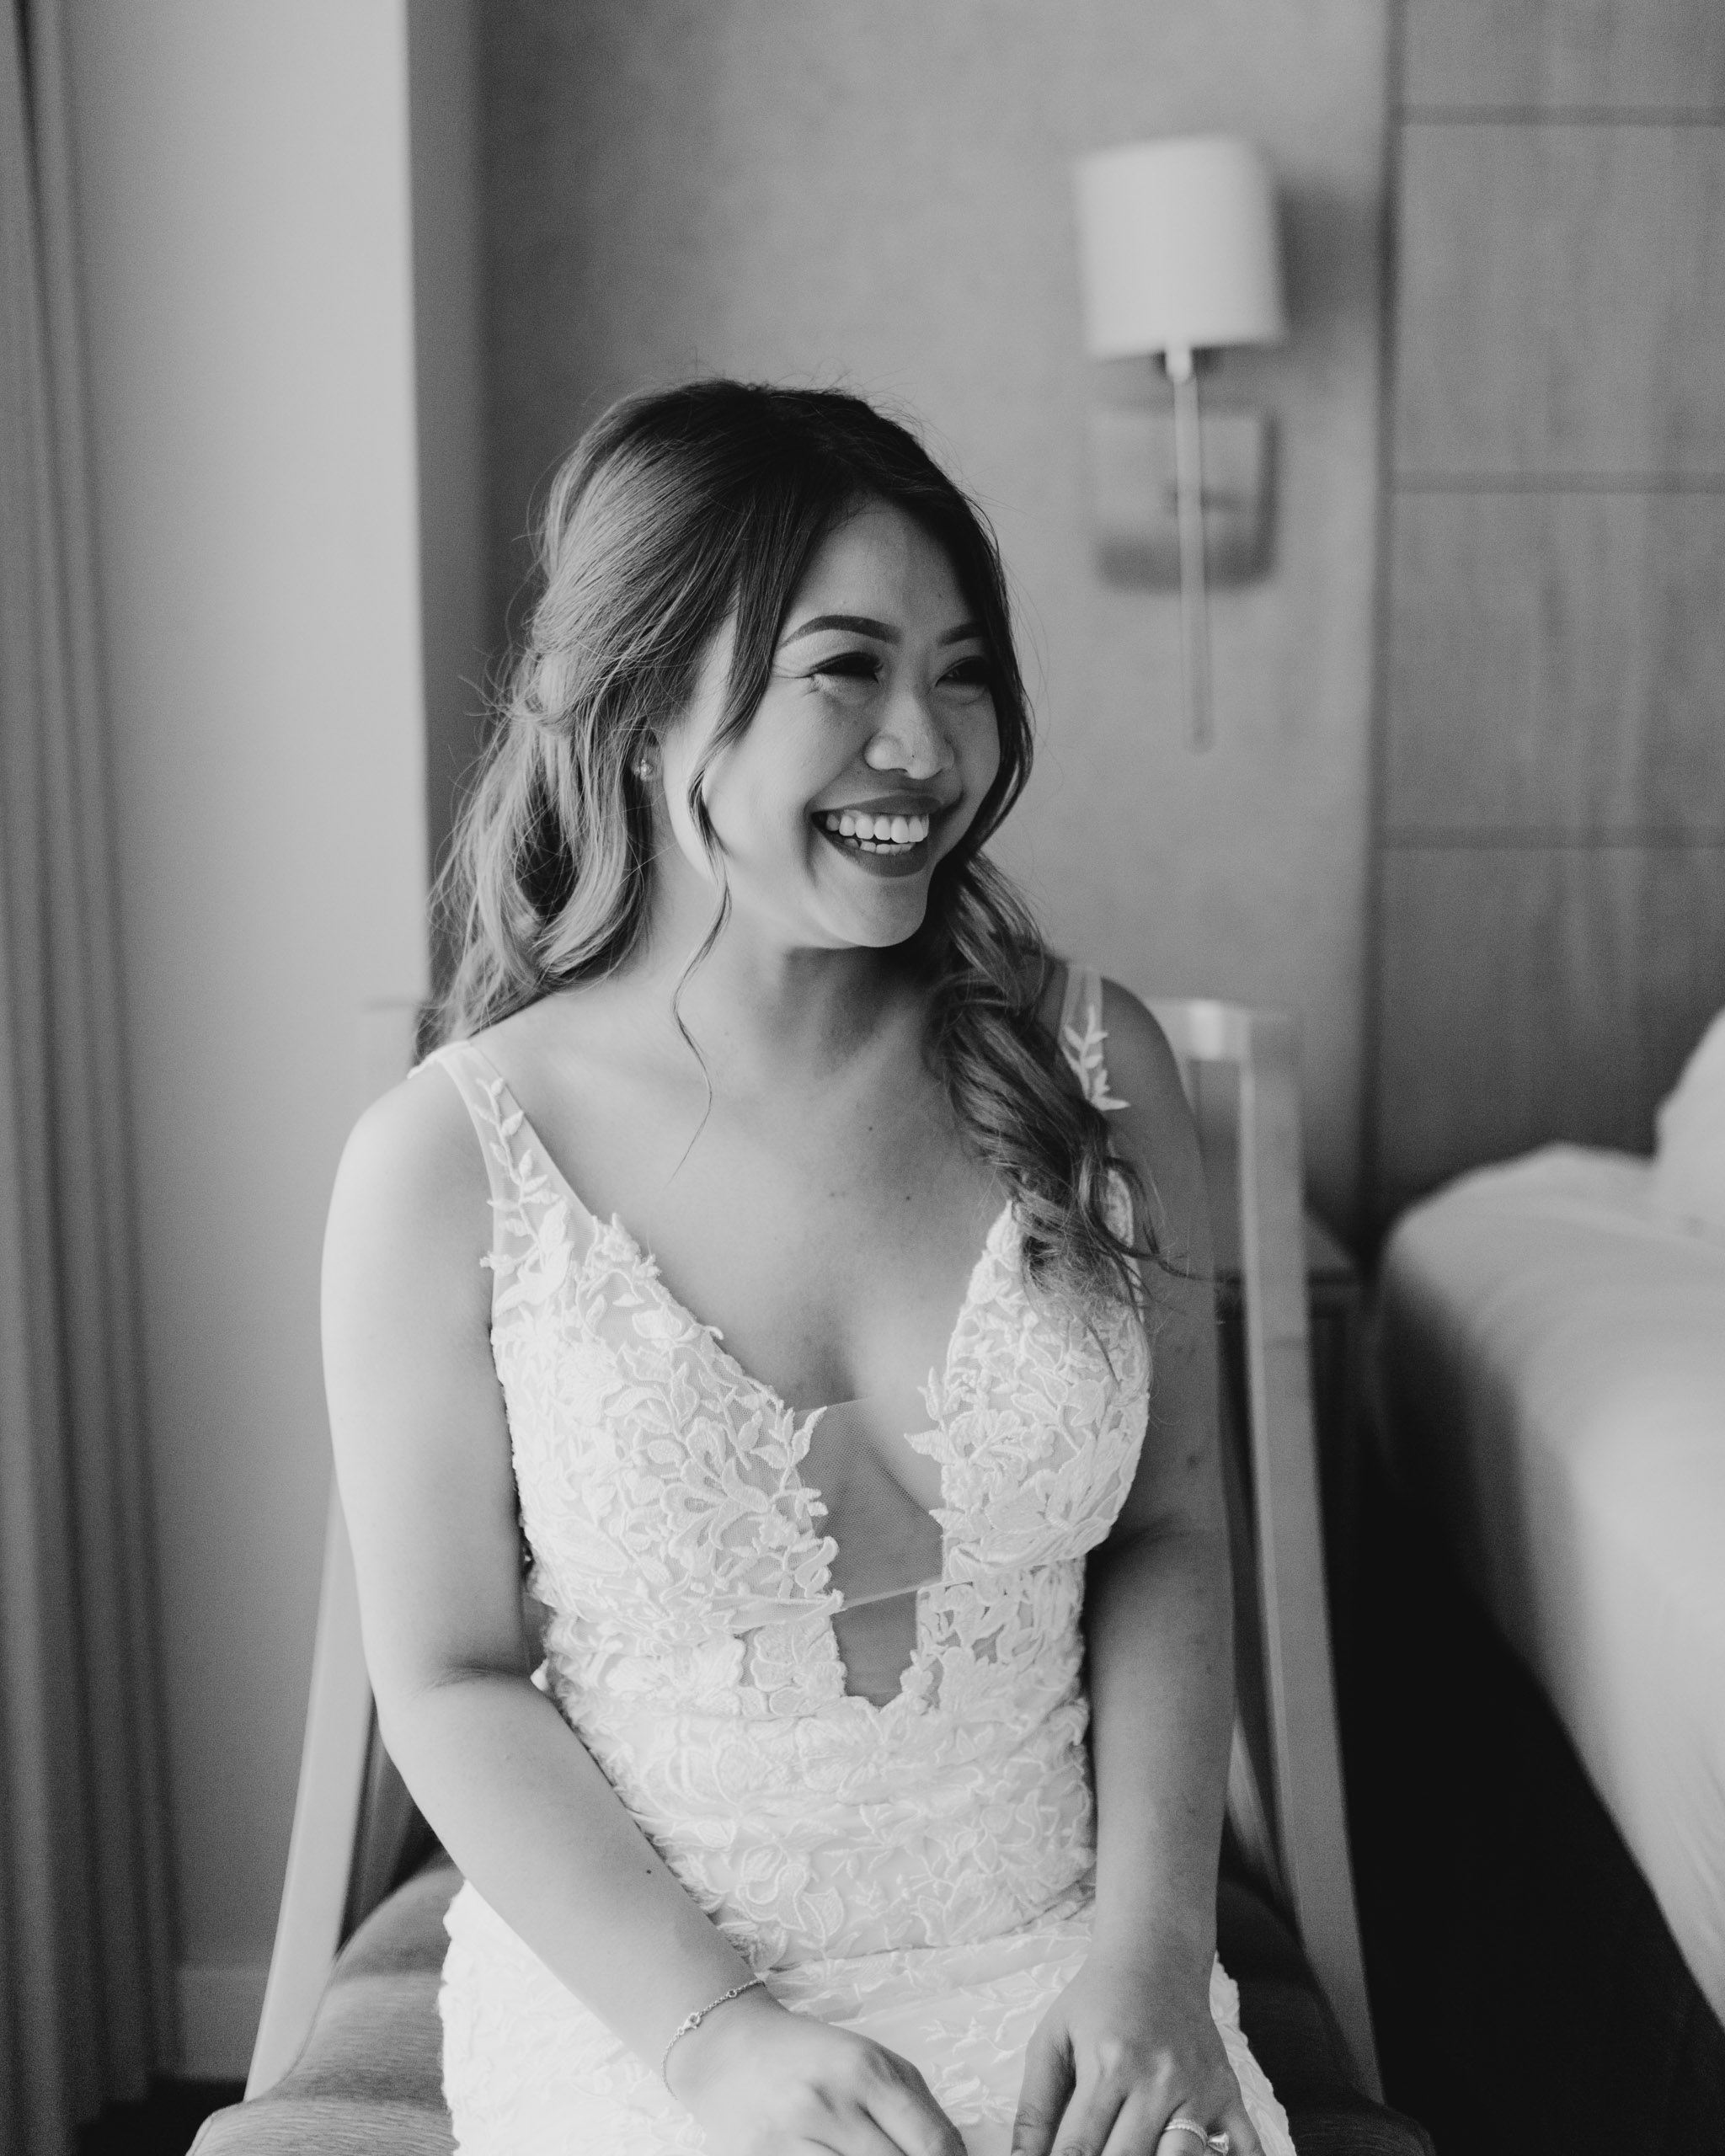 Bridal portrait at the Ala Moana Hotel - 53 By The Sea Hawaii Wedding By Oahu Wedding Photographer Desiree Leilani